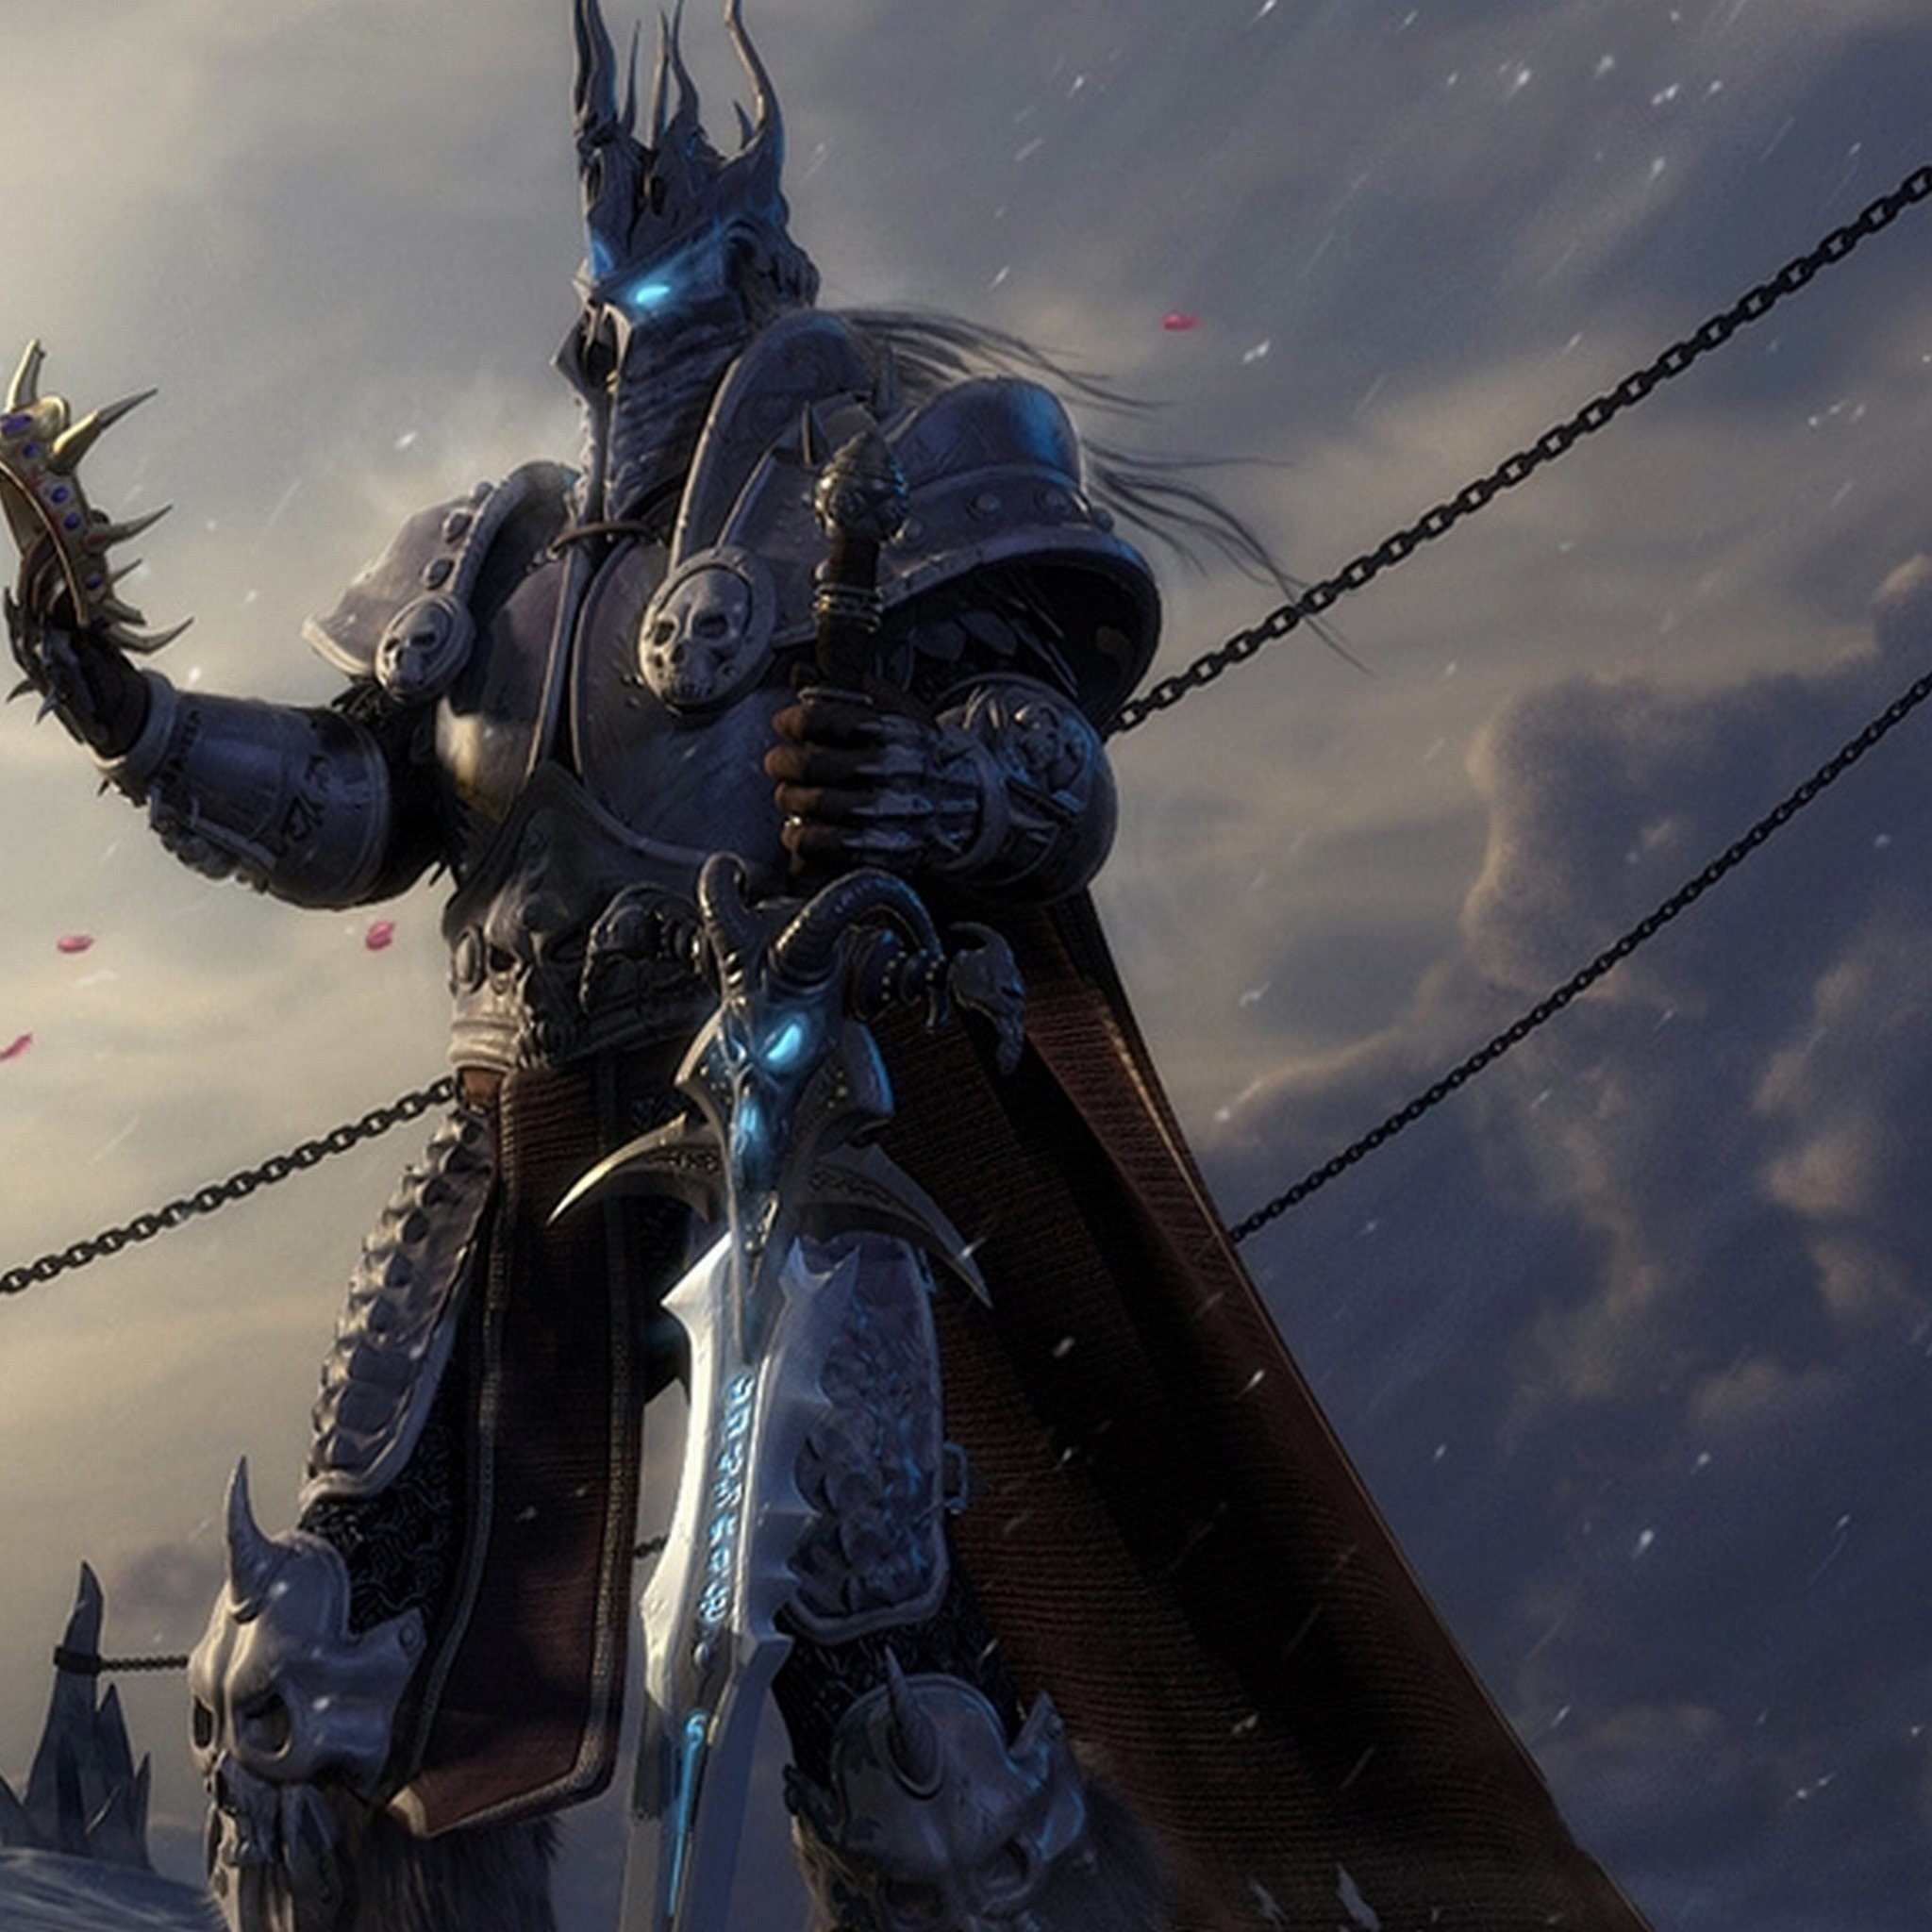 Diablo 3 Wallpaper 1920x1080: Arthas Wallpaper (76+ Images